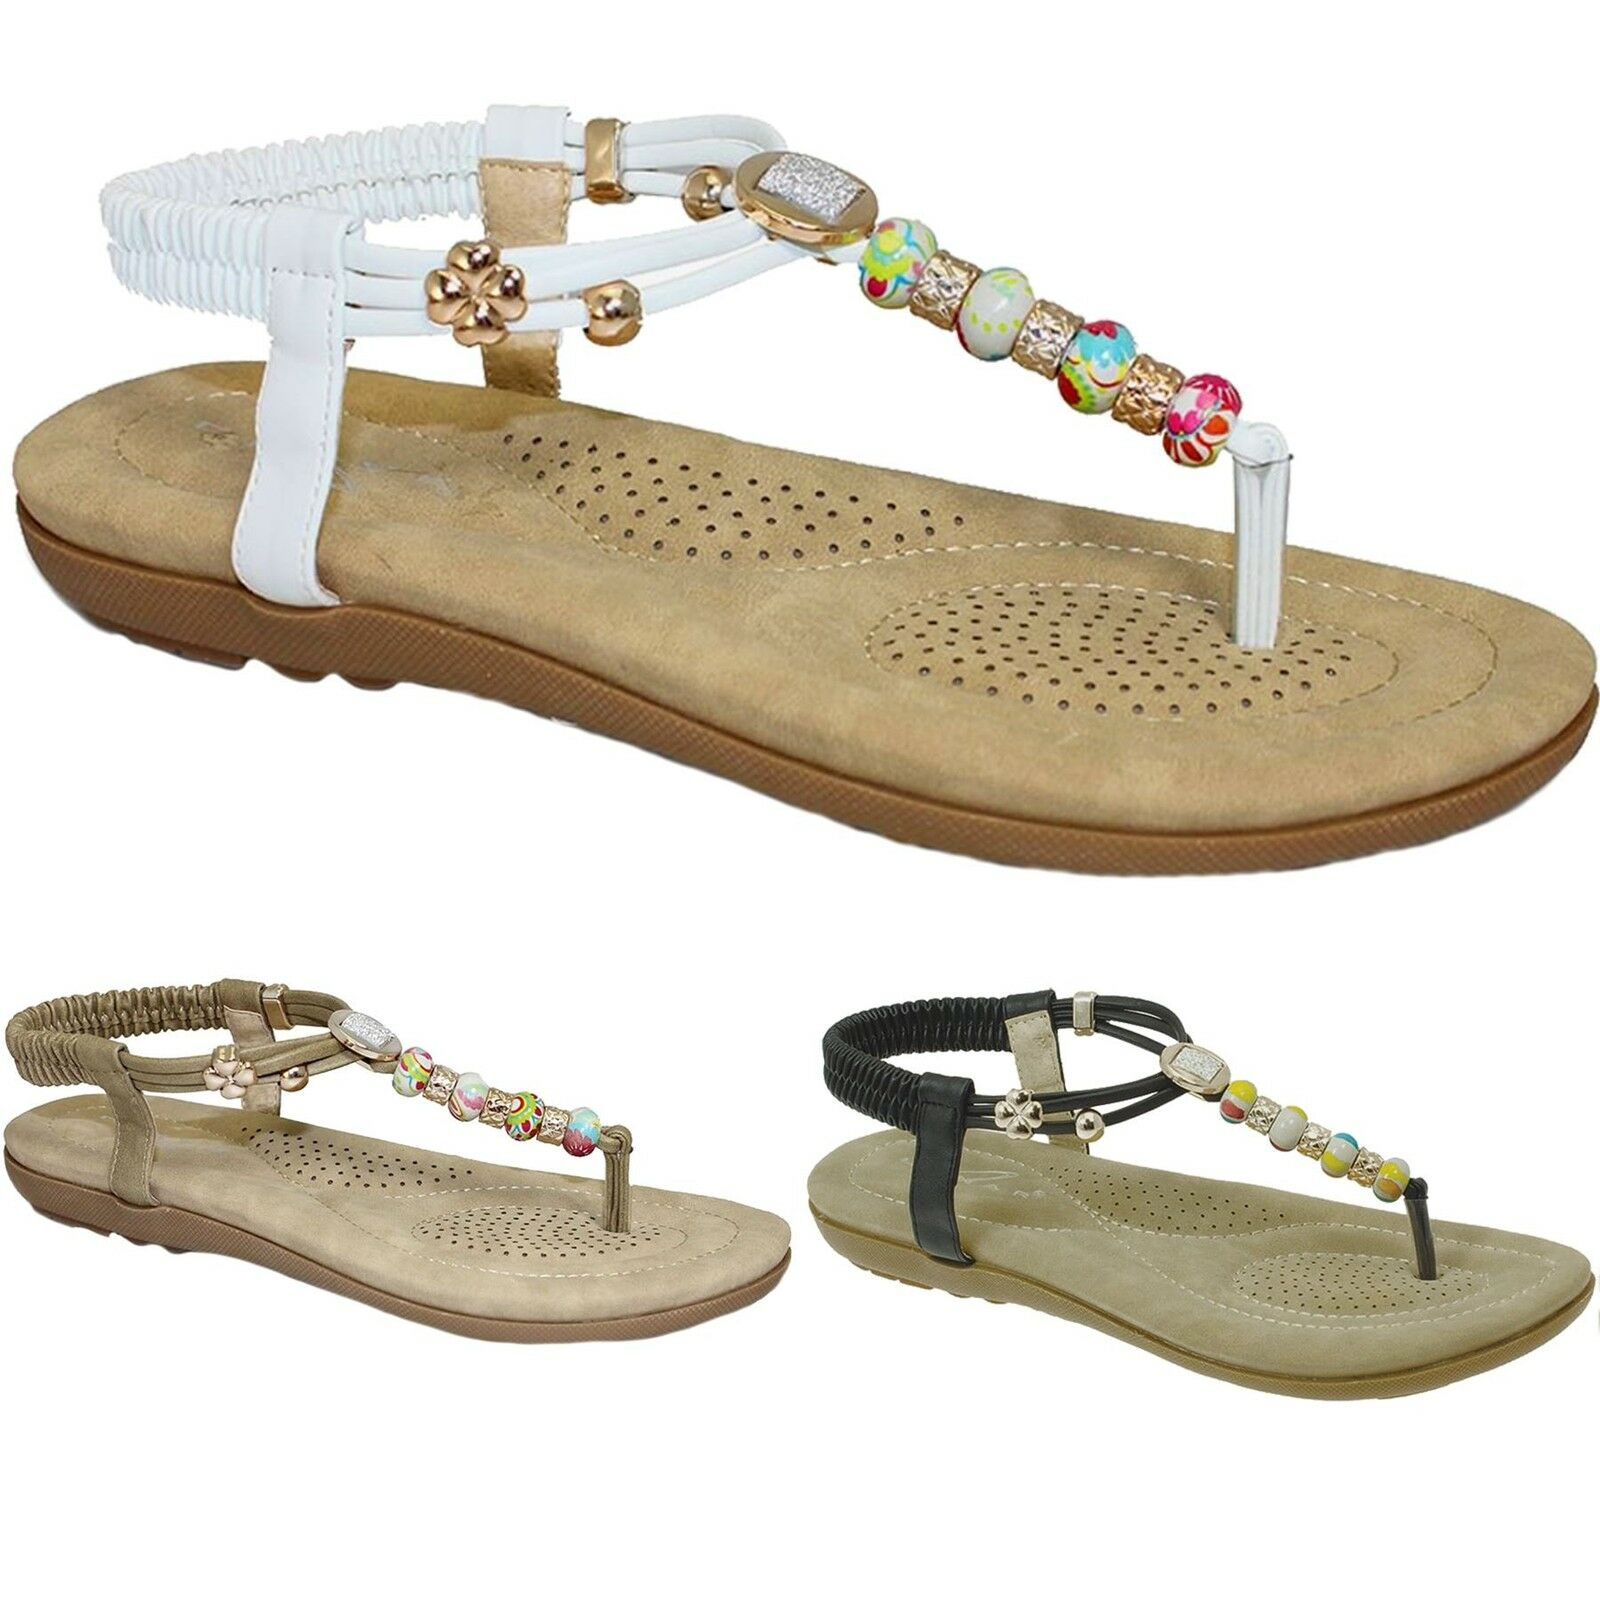 JLH708 Beech Ladies Beaded Vibrant Comfortable Thong Fashion Beach Sandals